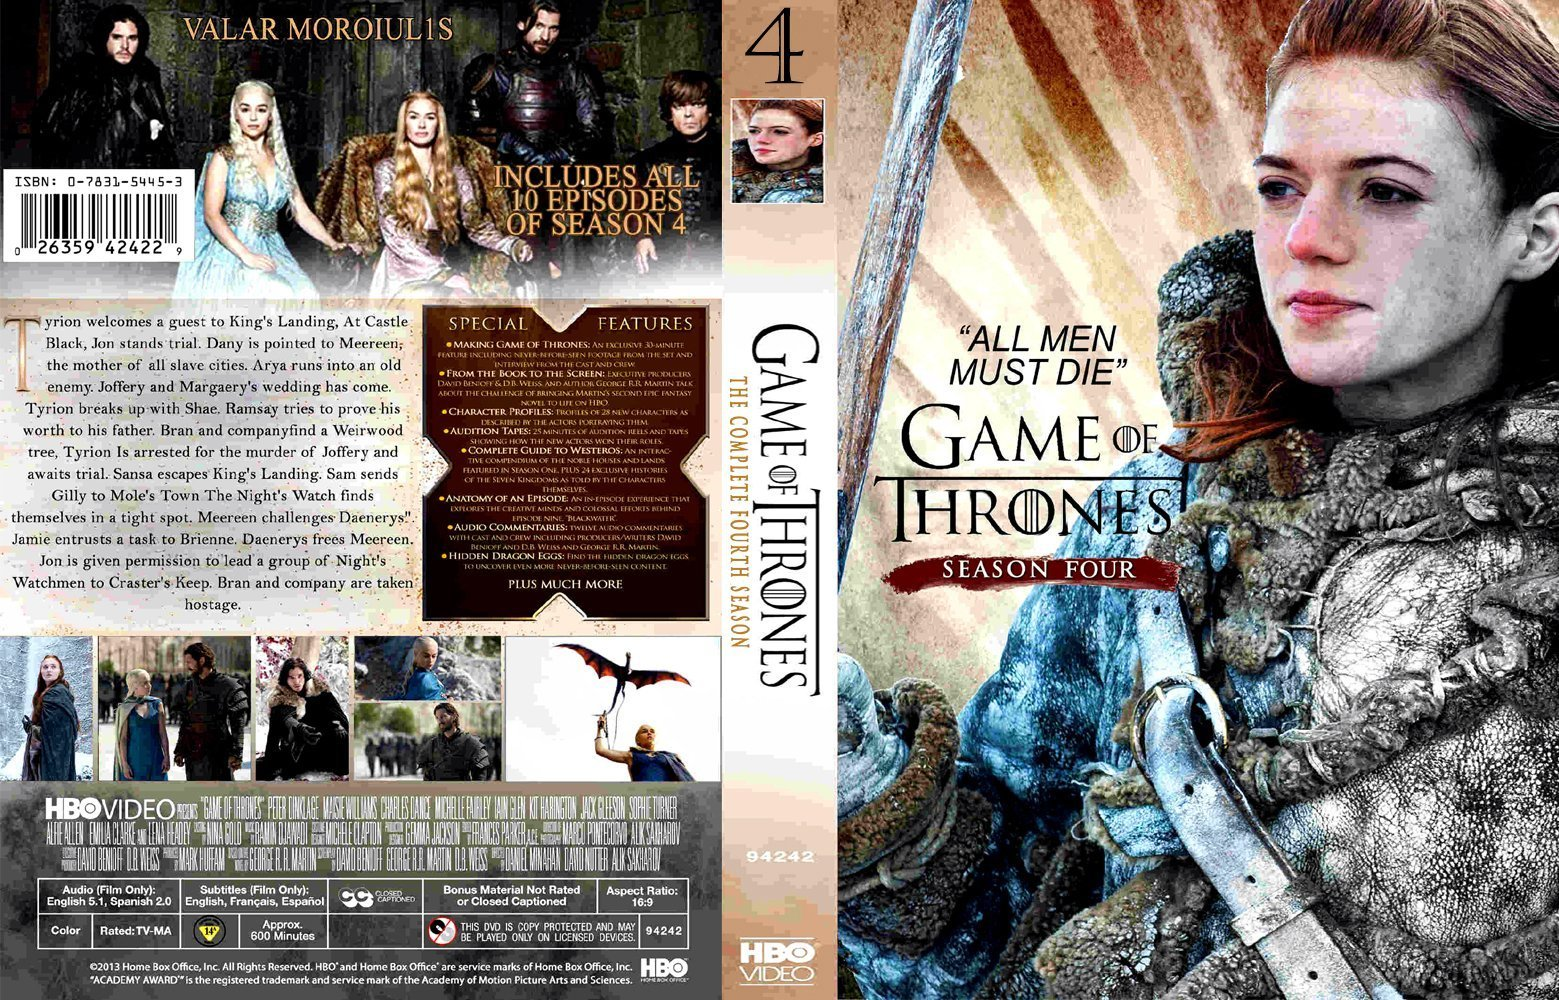 game of thrones season 4 r0 custom dvd covers and labels. Black Bedroom Furniture Sets. Home Design Ideas